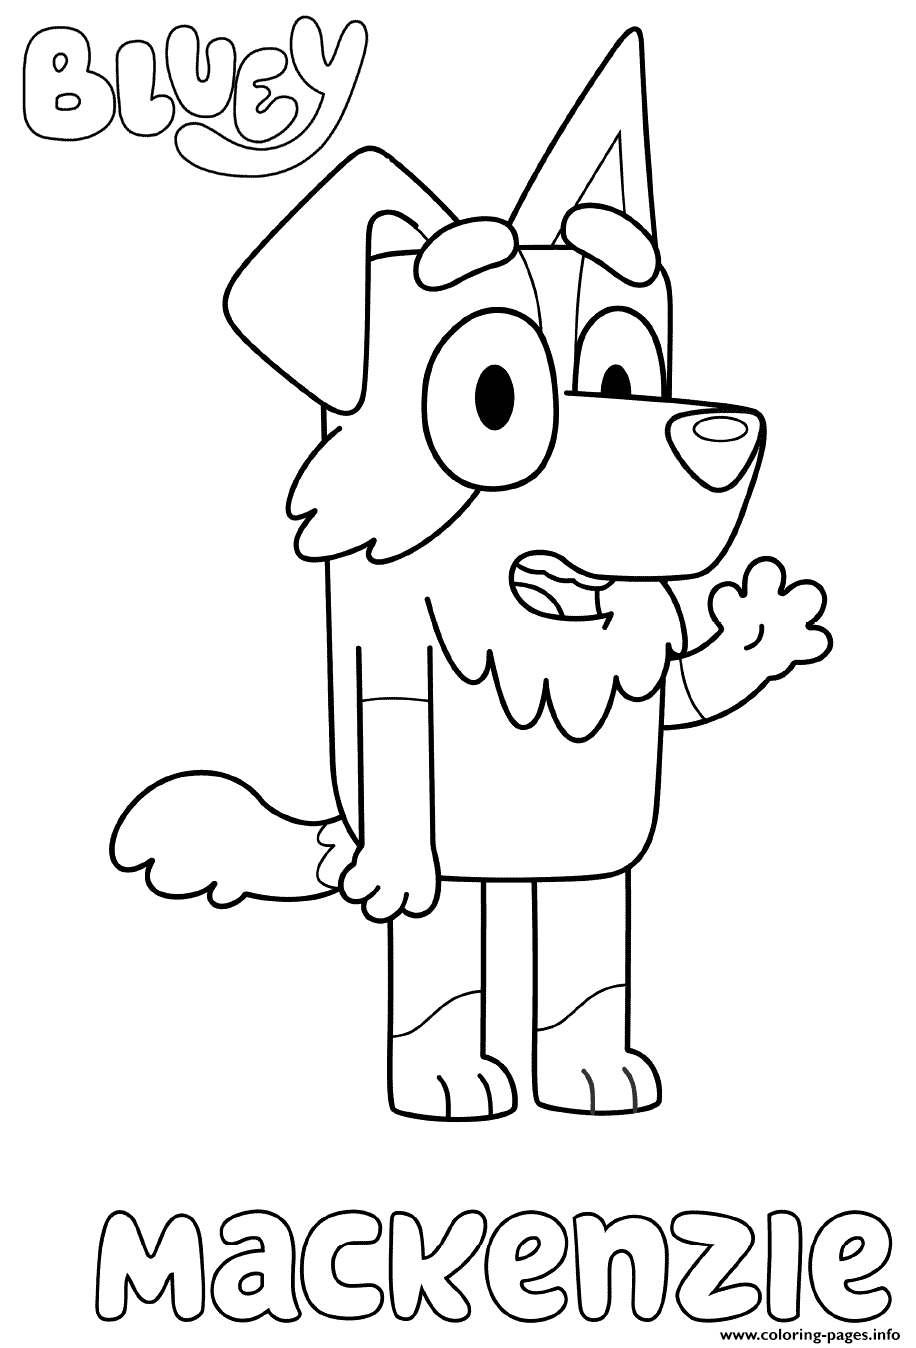 Border Collie Mackenzie coloring pages